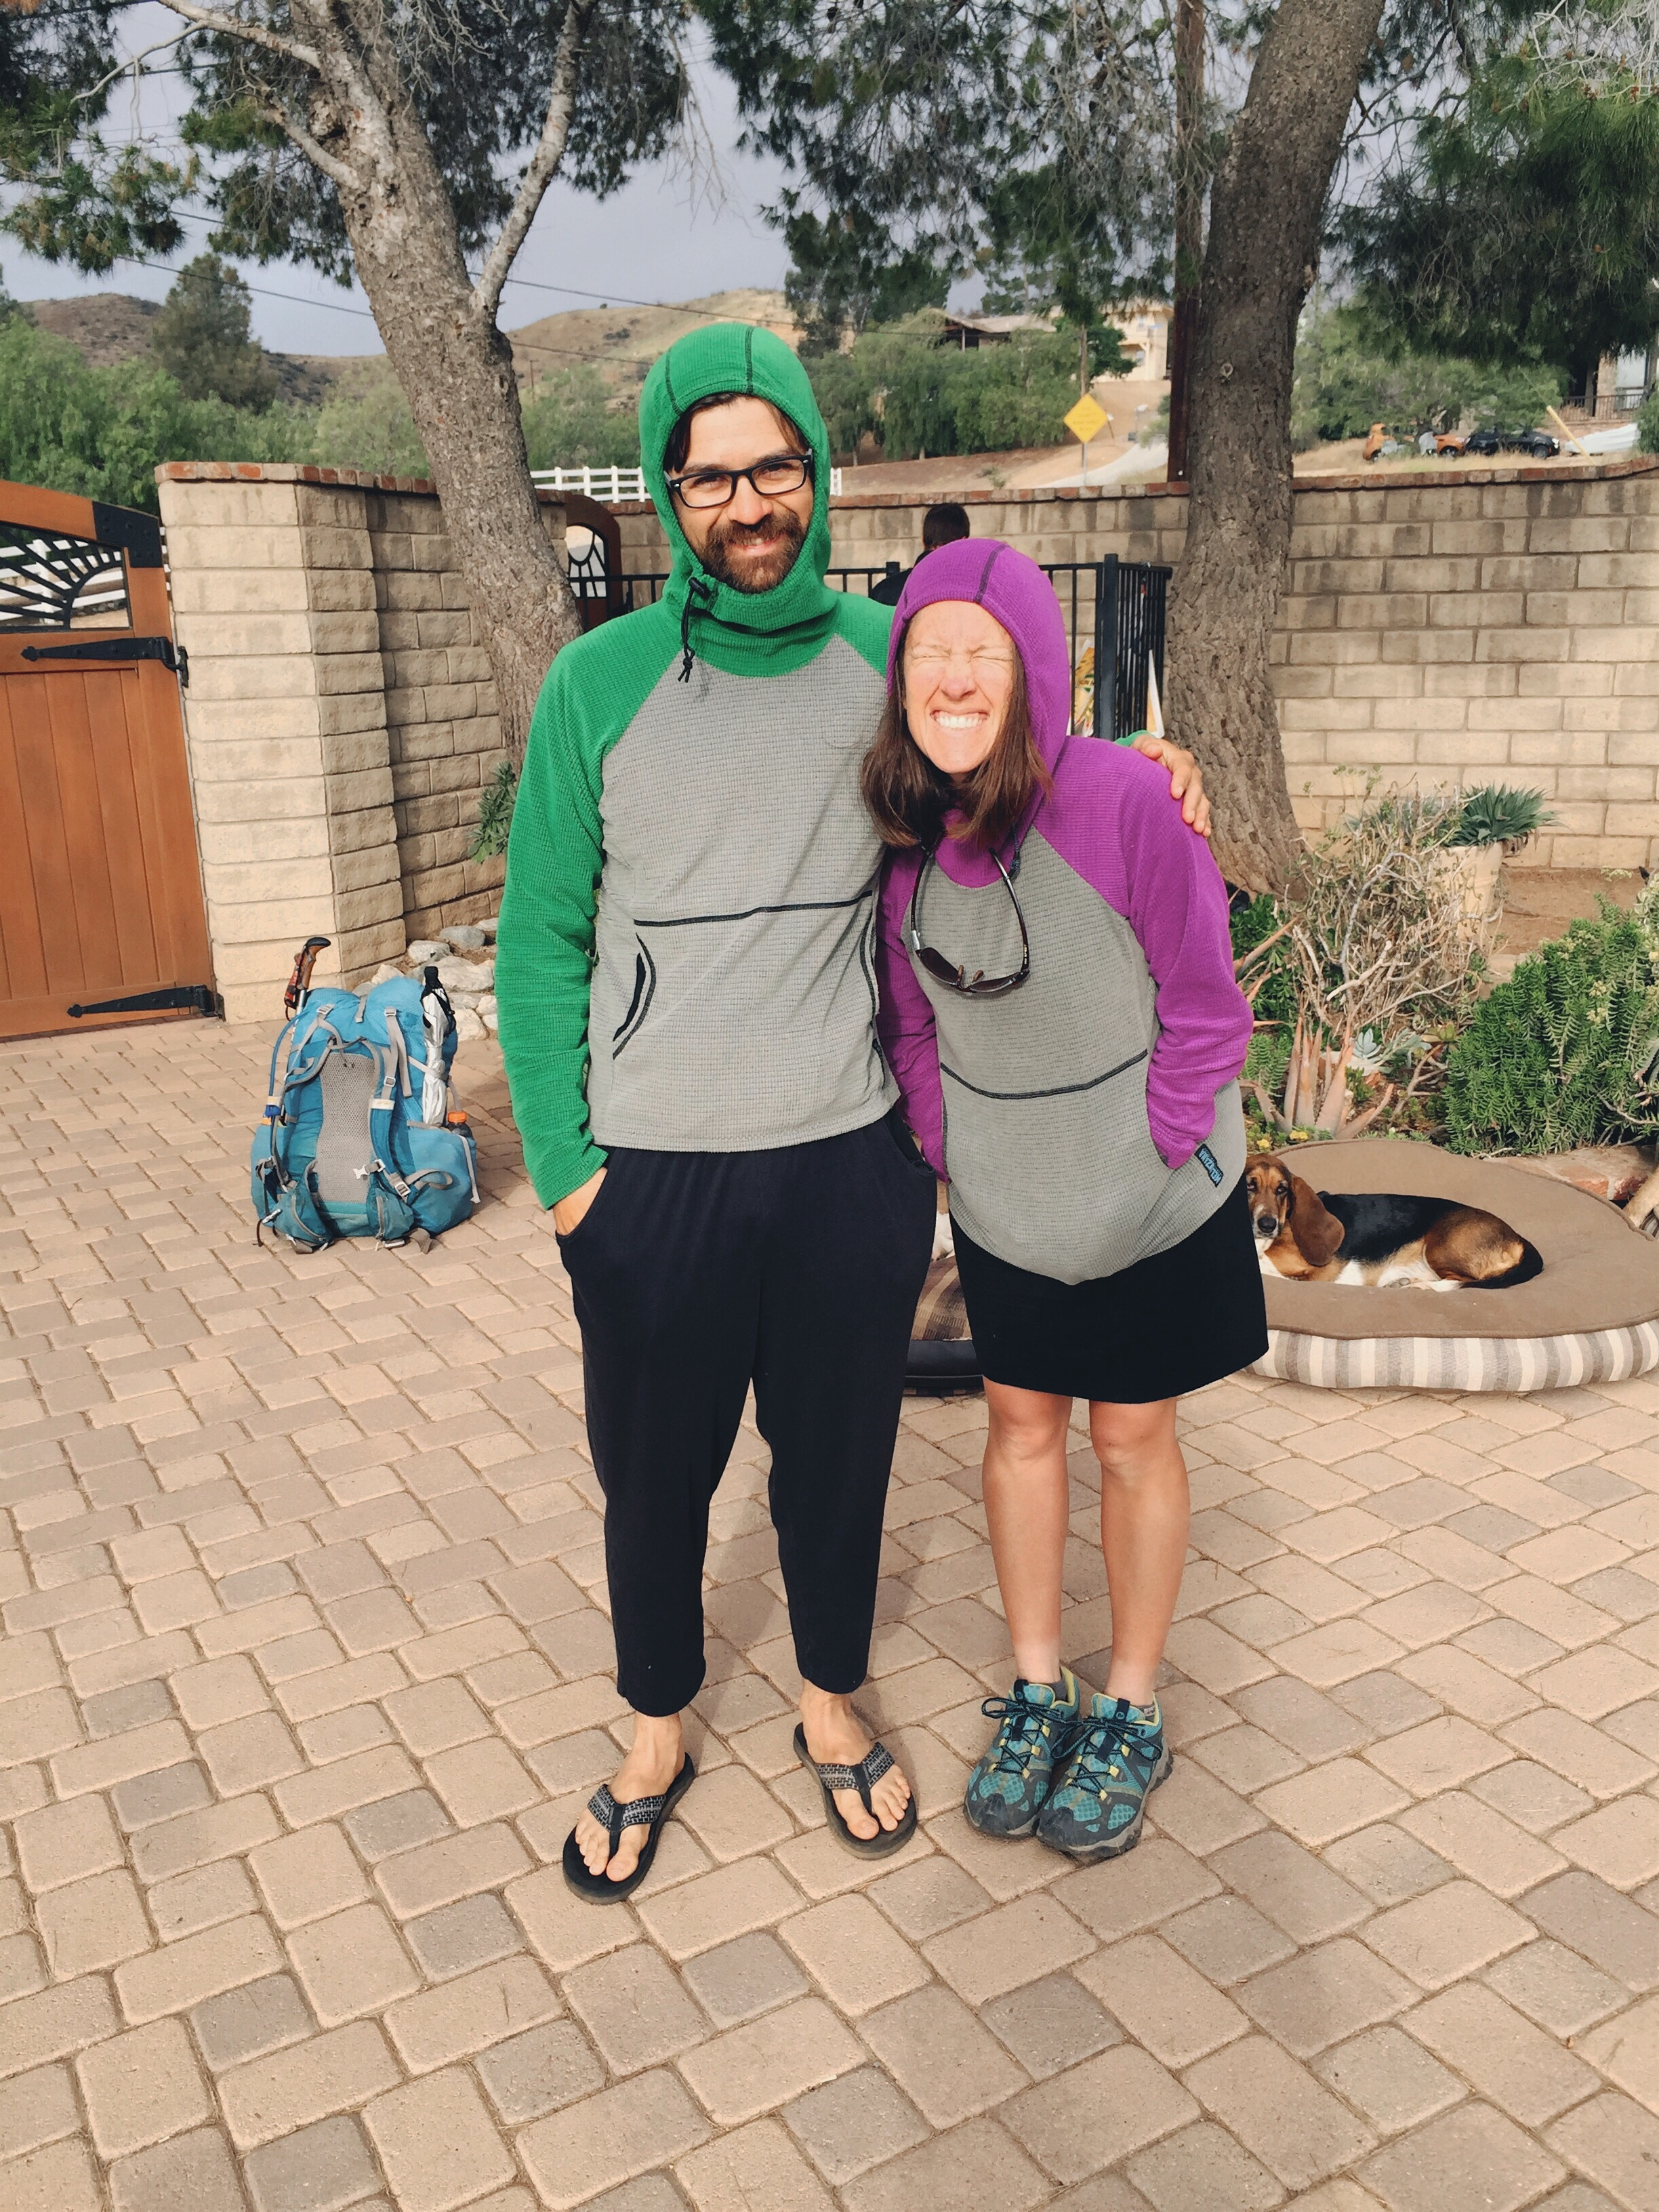 GB and Kristen being twins. I thought we should all order the same fleece and be twins on trail.